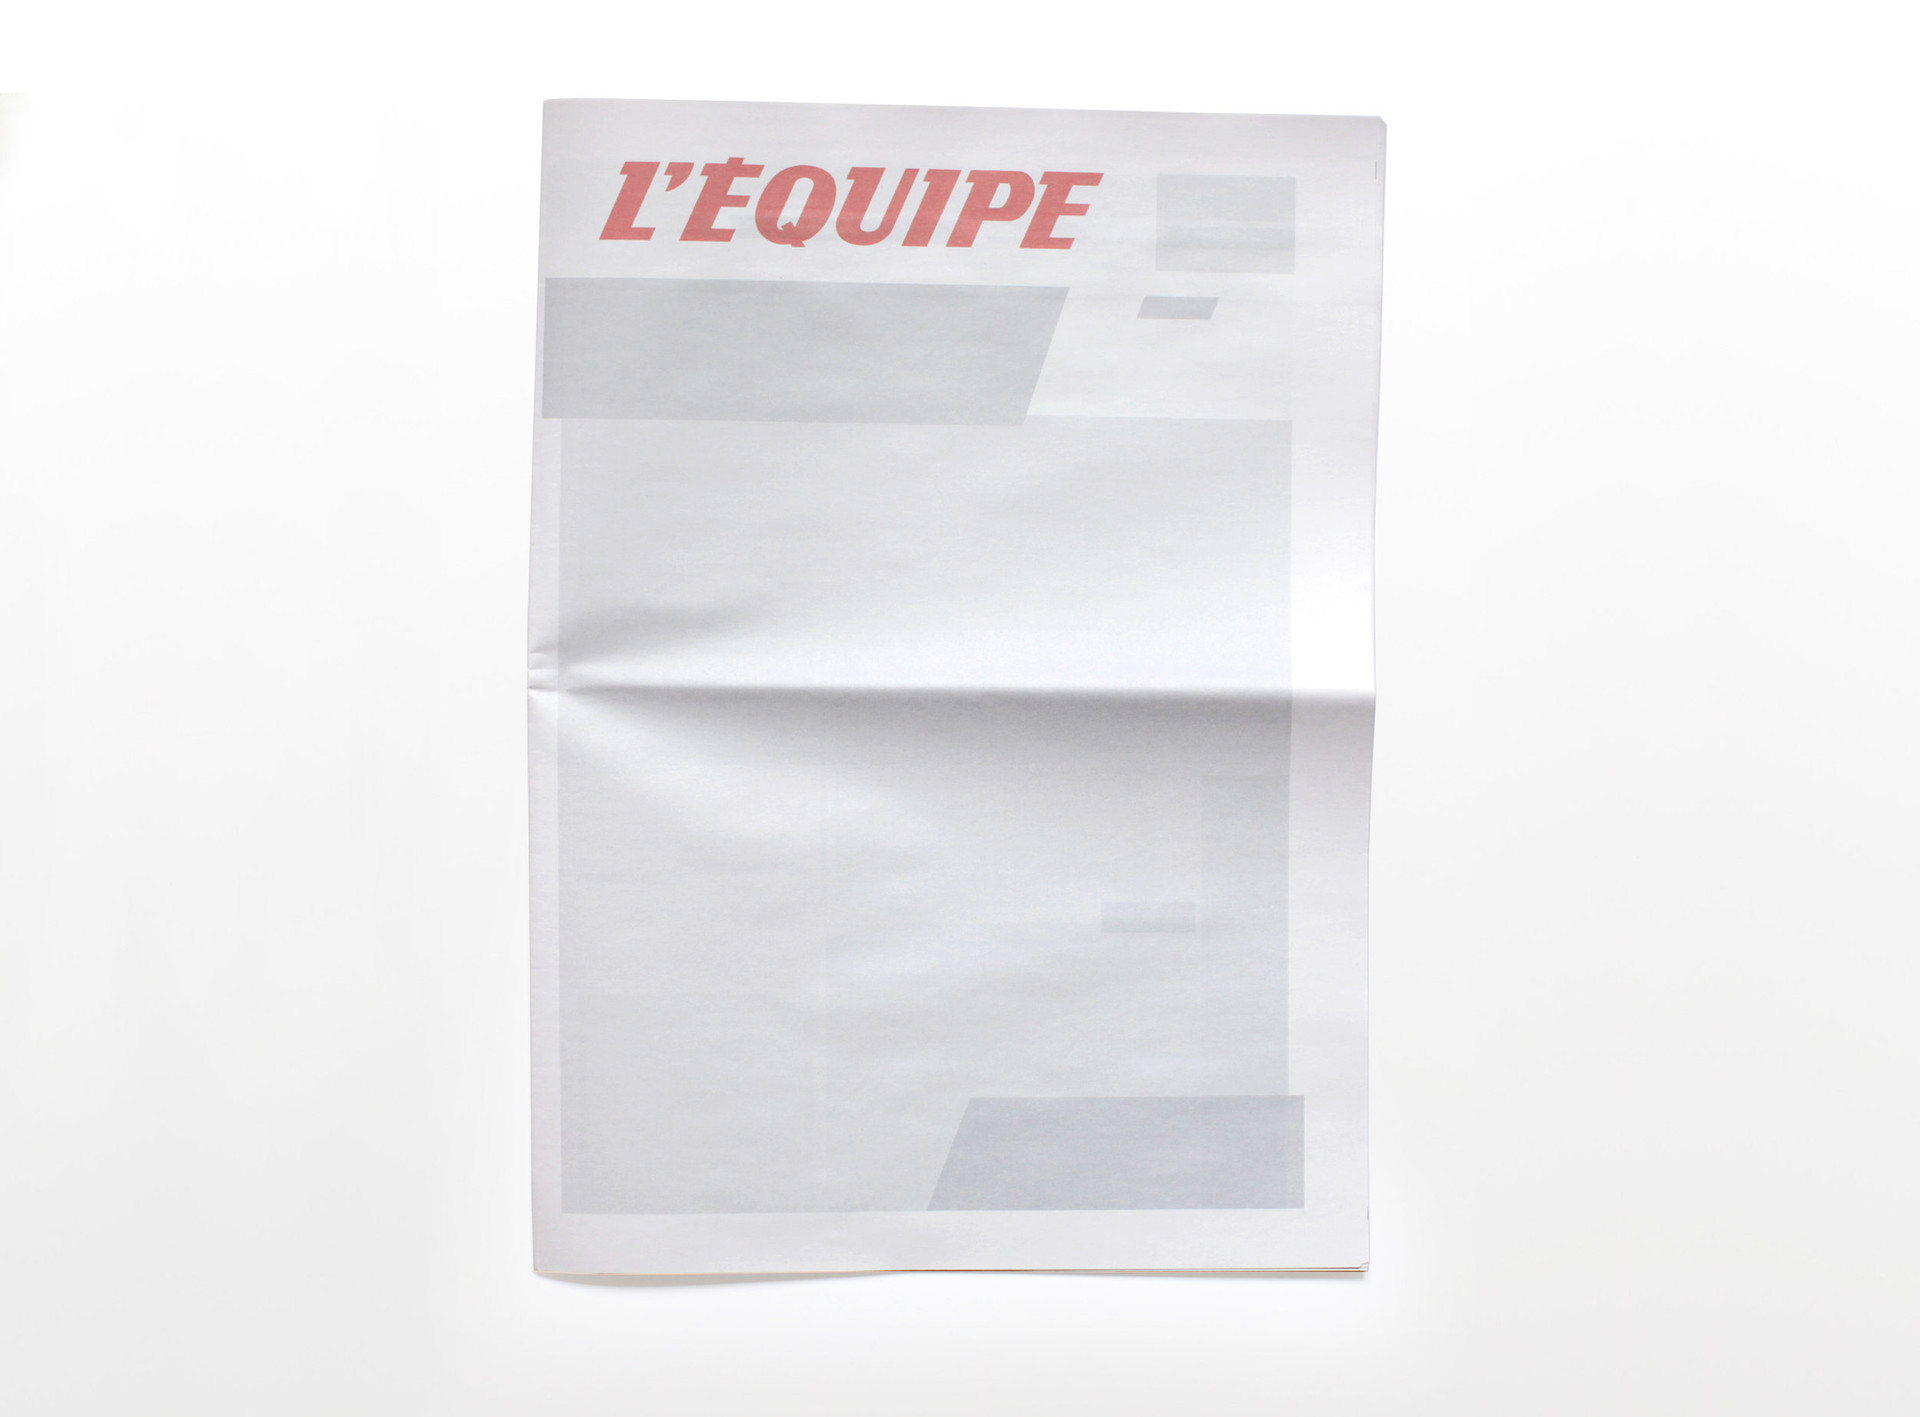 NOTHING IN L'EQUIPE: Newspapers from around the world with nothing in them.